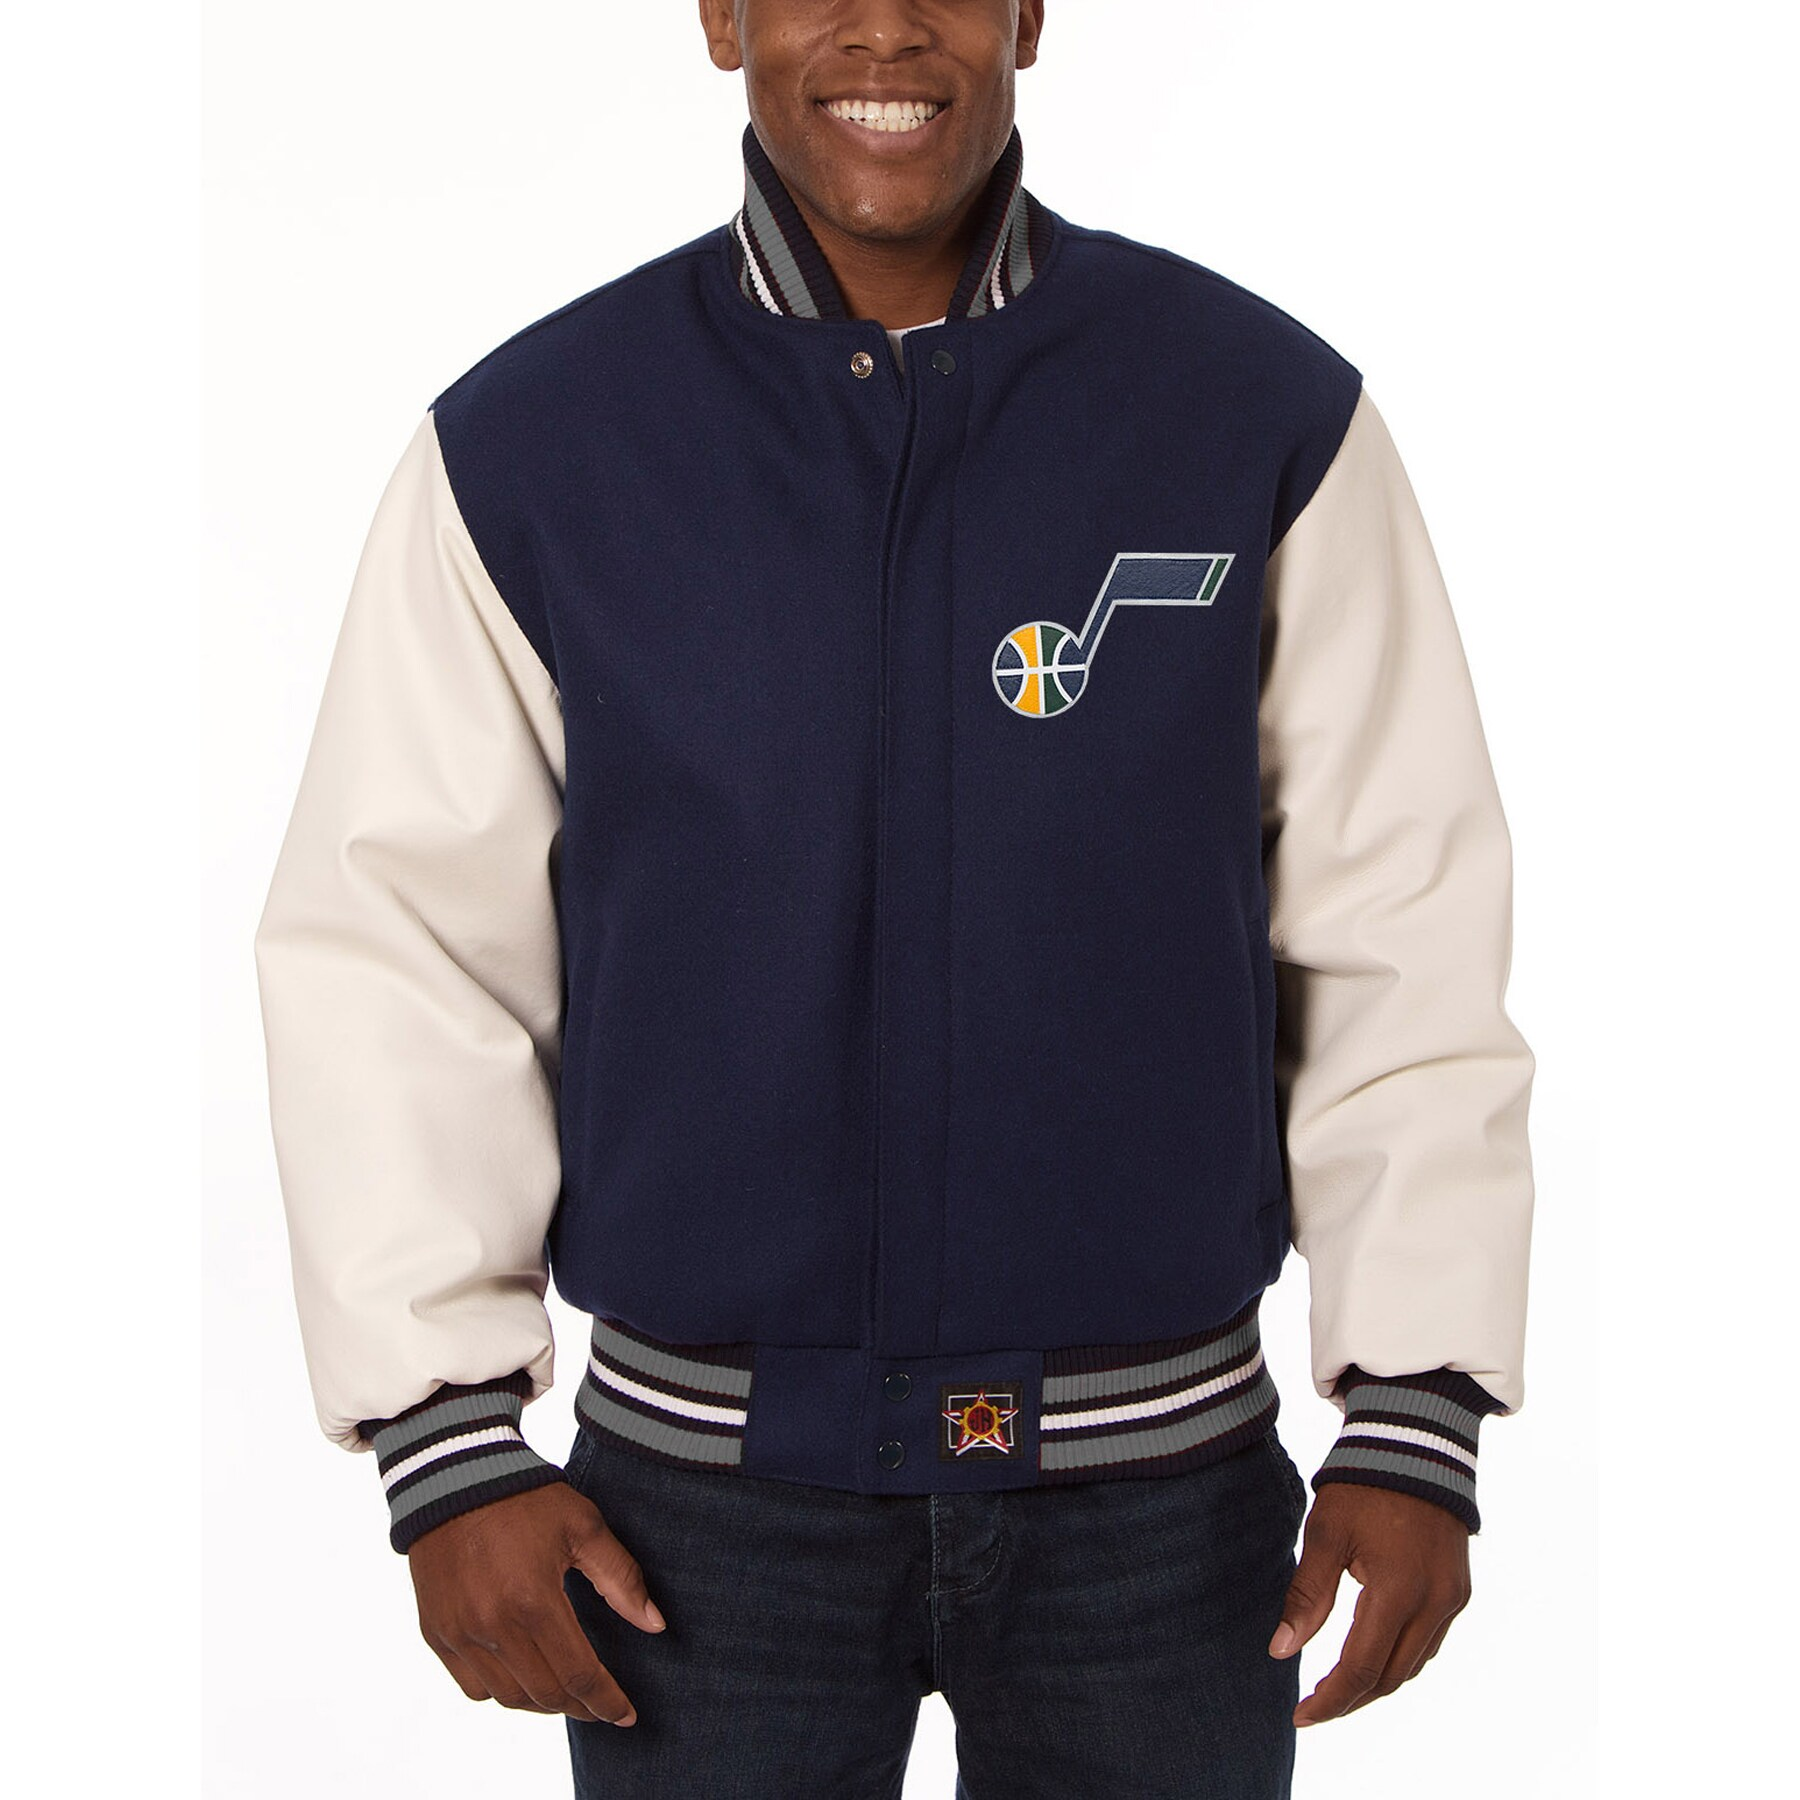 Utah Jazz JH Design Domestic Two-Tone Wool and Leather Jacket - Navy